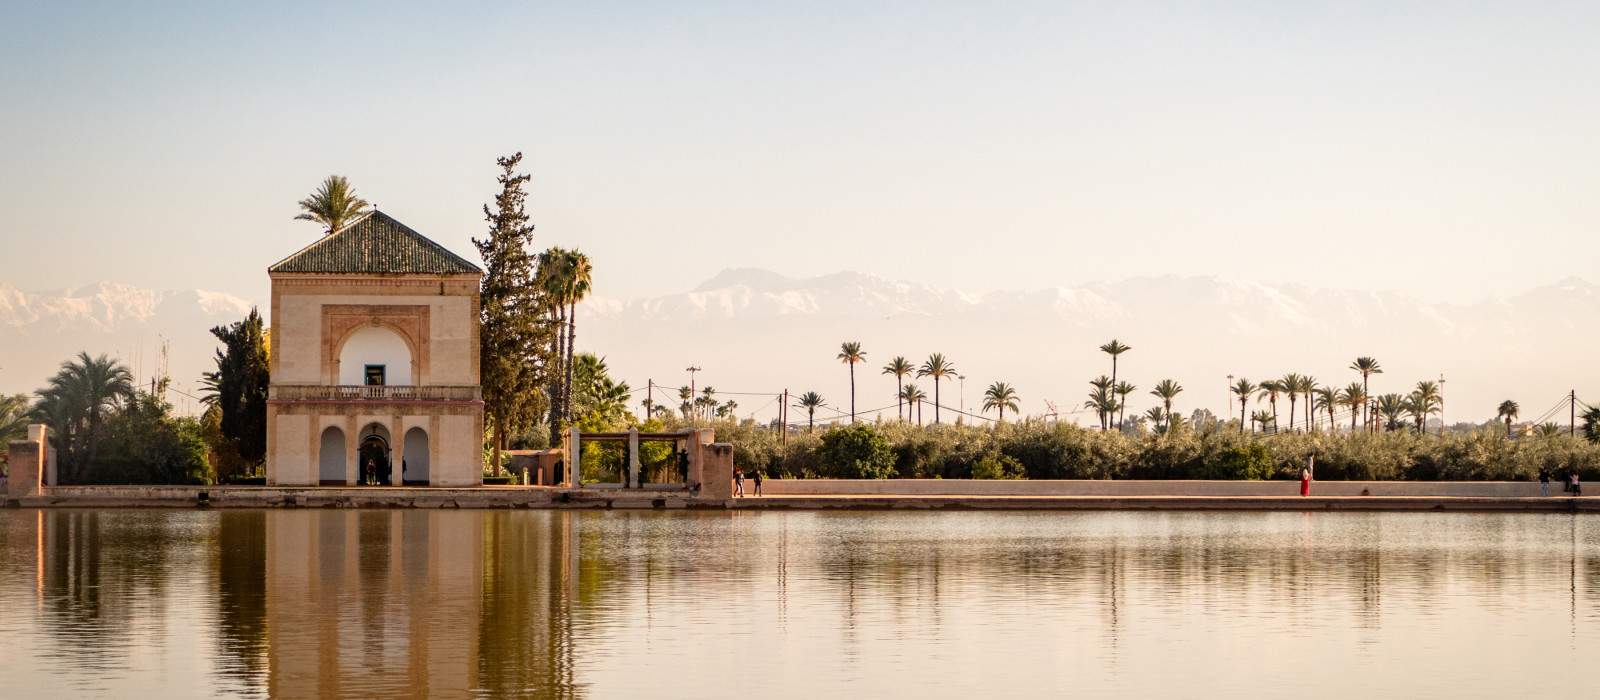 The Menara gardens are botanical gardens located to the west of Marrakech, Morocco, near the Atlas Mountains - discover the best time to visit Morocco